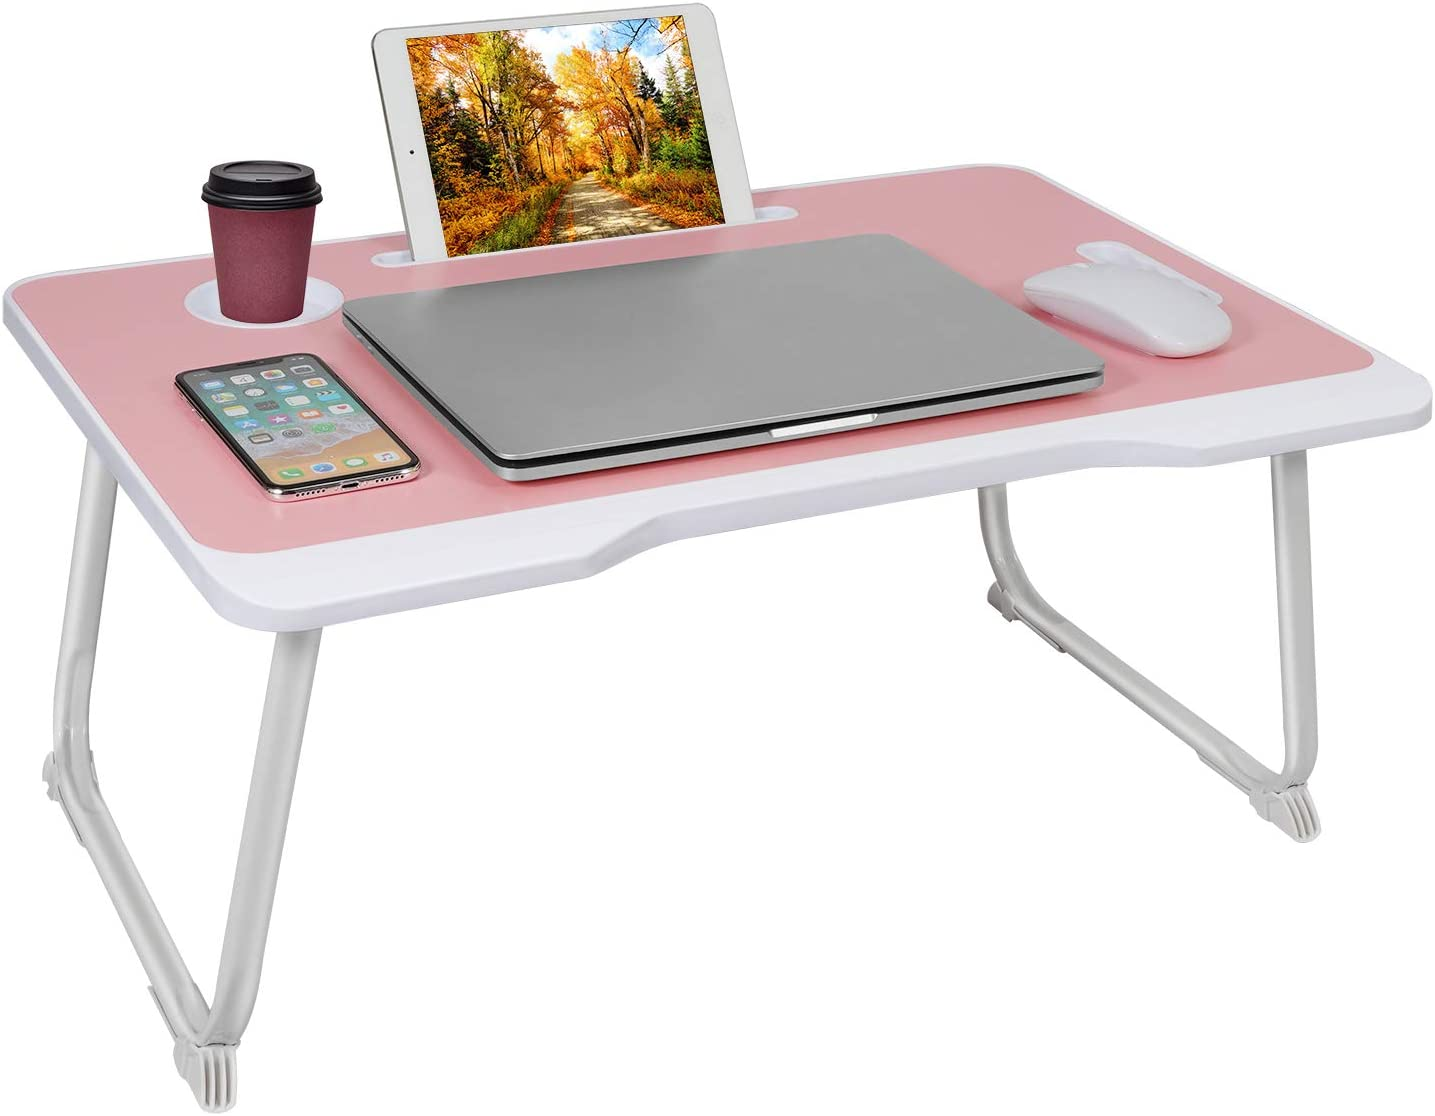 Laptop Bed Tray Table,Foldable Lap Desk Stand with Cup Holder, Kids Adults Students Cute Multifunctional Lap Bed Desk,Suitable for Eating, Working, Writing, Gaming, Drawing (Pink-White)